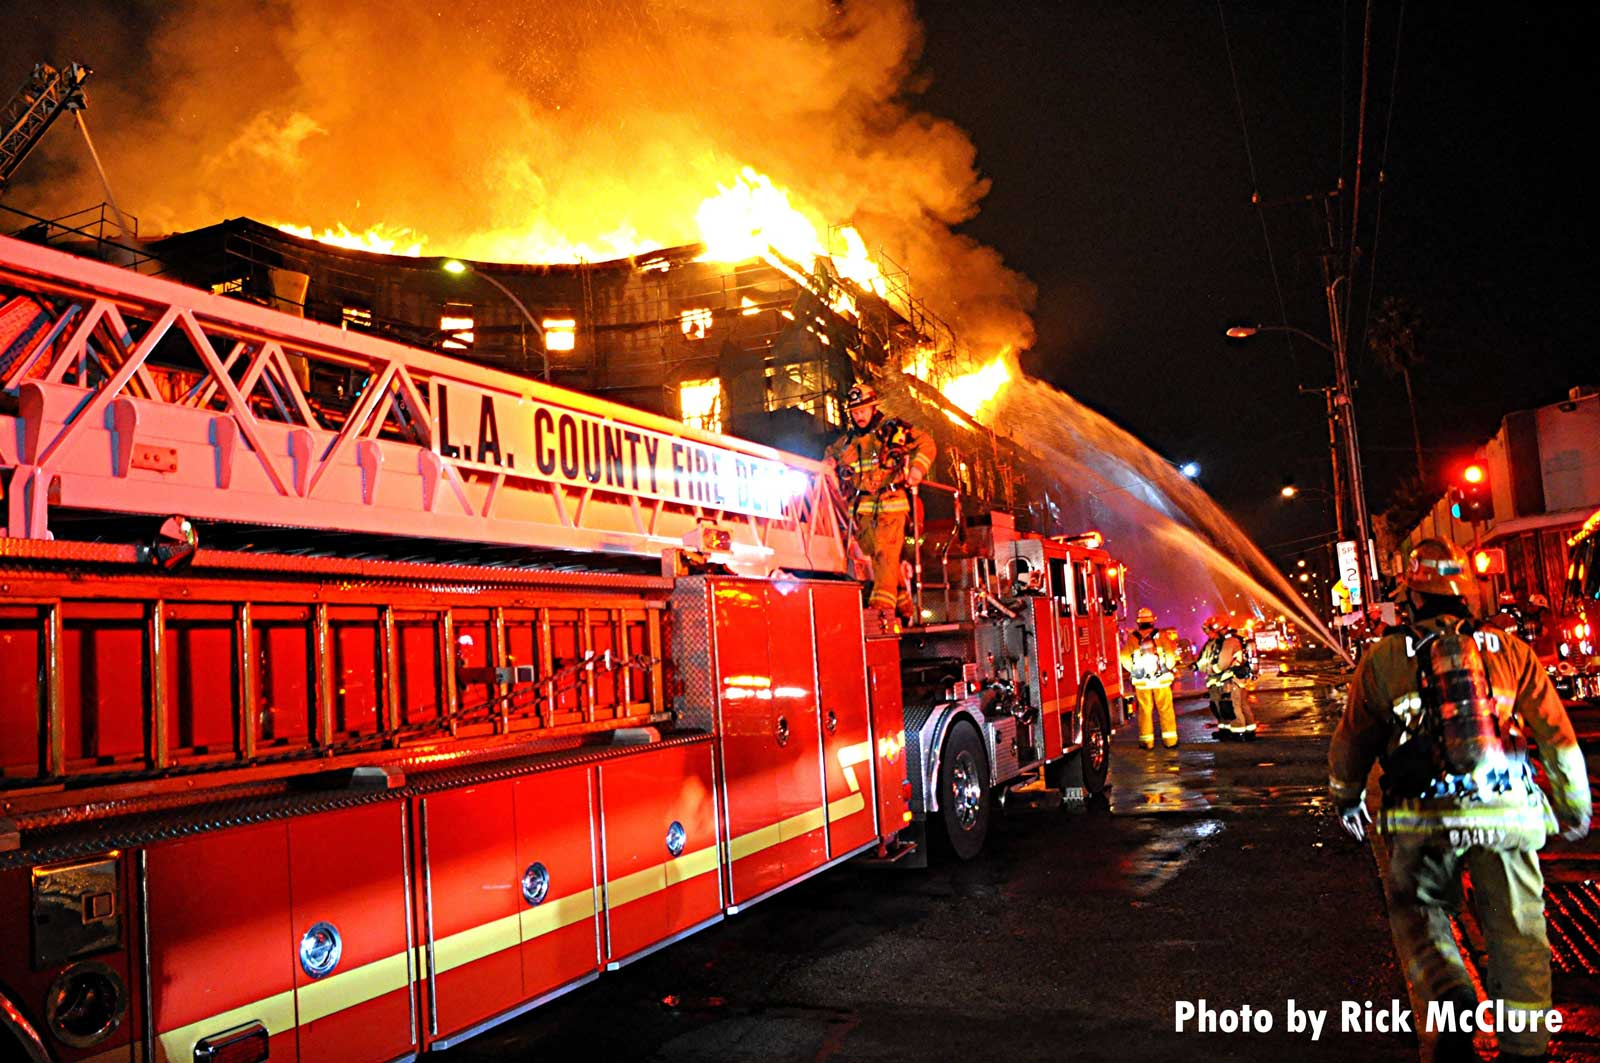 Ladder truck with flames shooting from the building